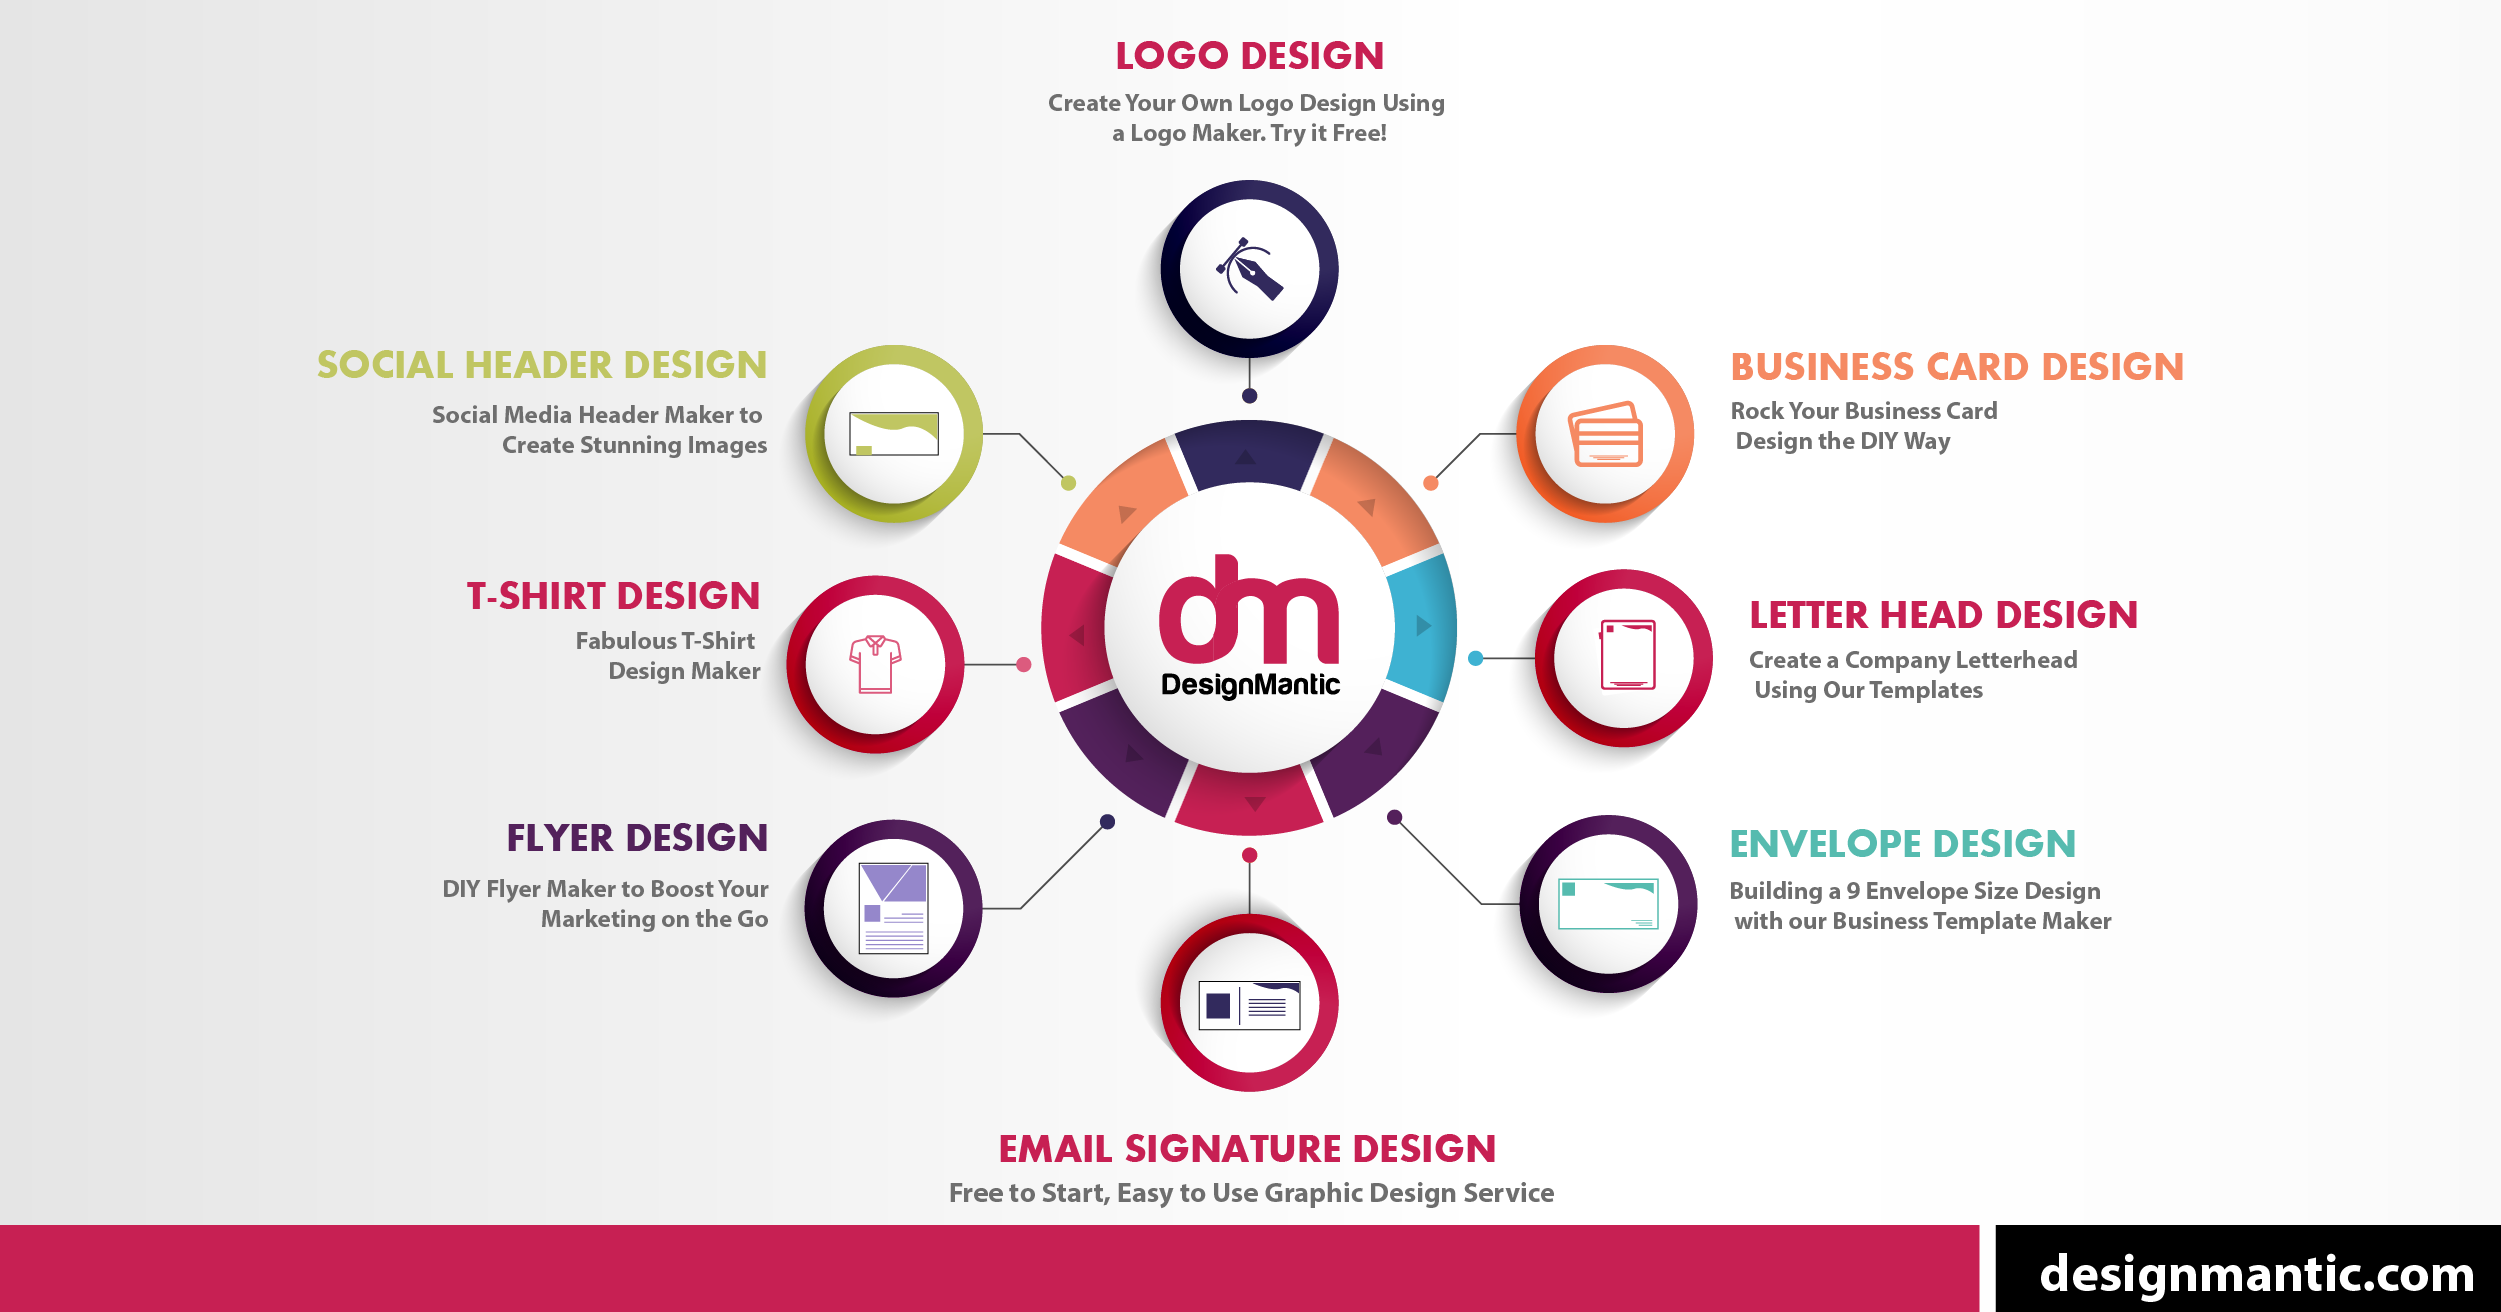 Graphic Design Software Logo Tool Designmantic The Design Shop,Simple King And Queen Crown Tattoo Designs